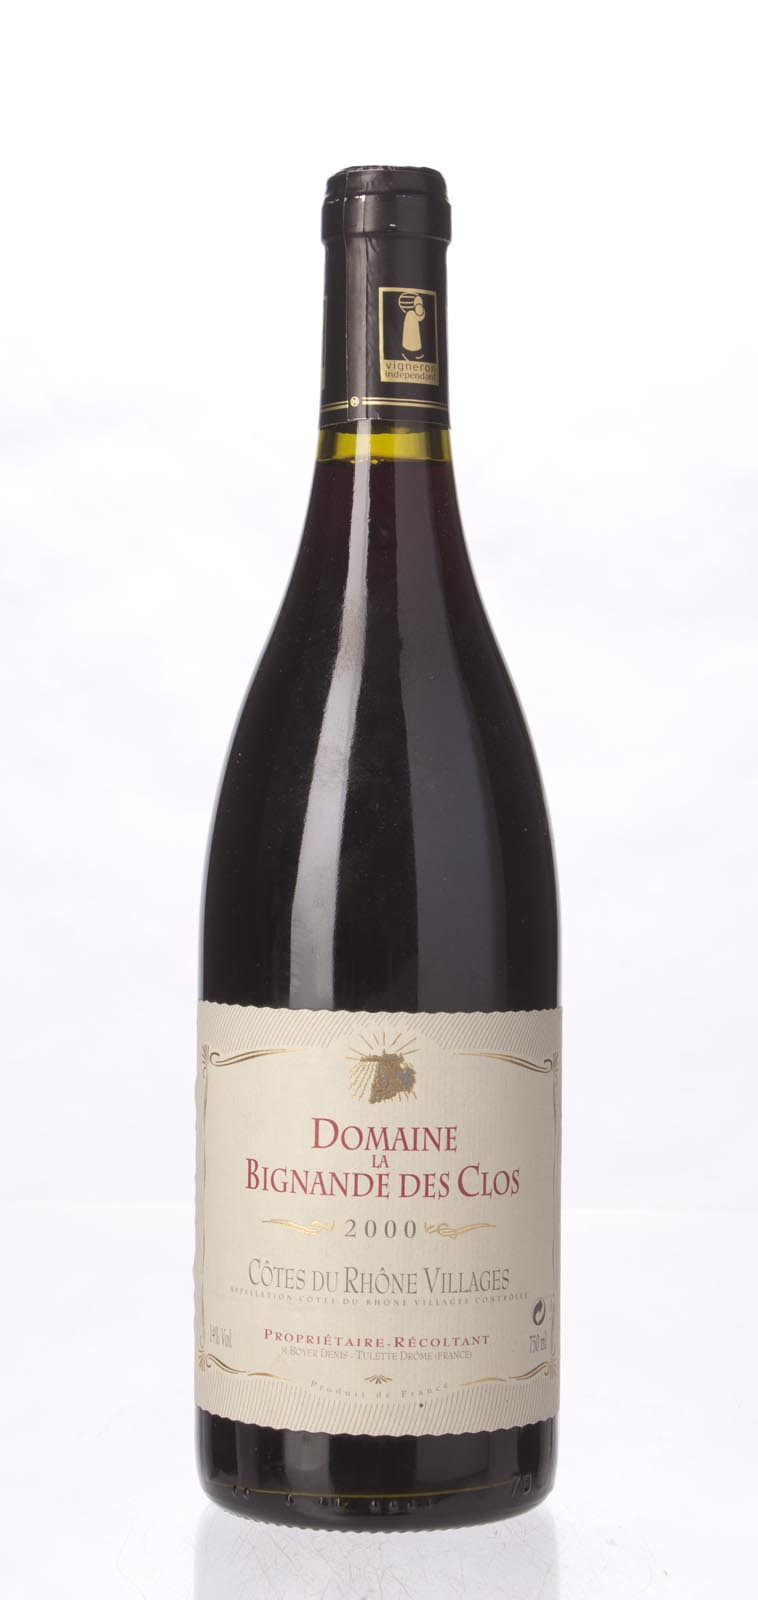 Domaine la Bignande des Clos Cotes du Rhone Villages 2000, 750mL () from The BPW - Merchants of rare and fine wines.